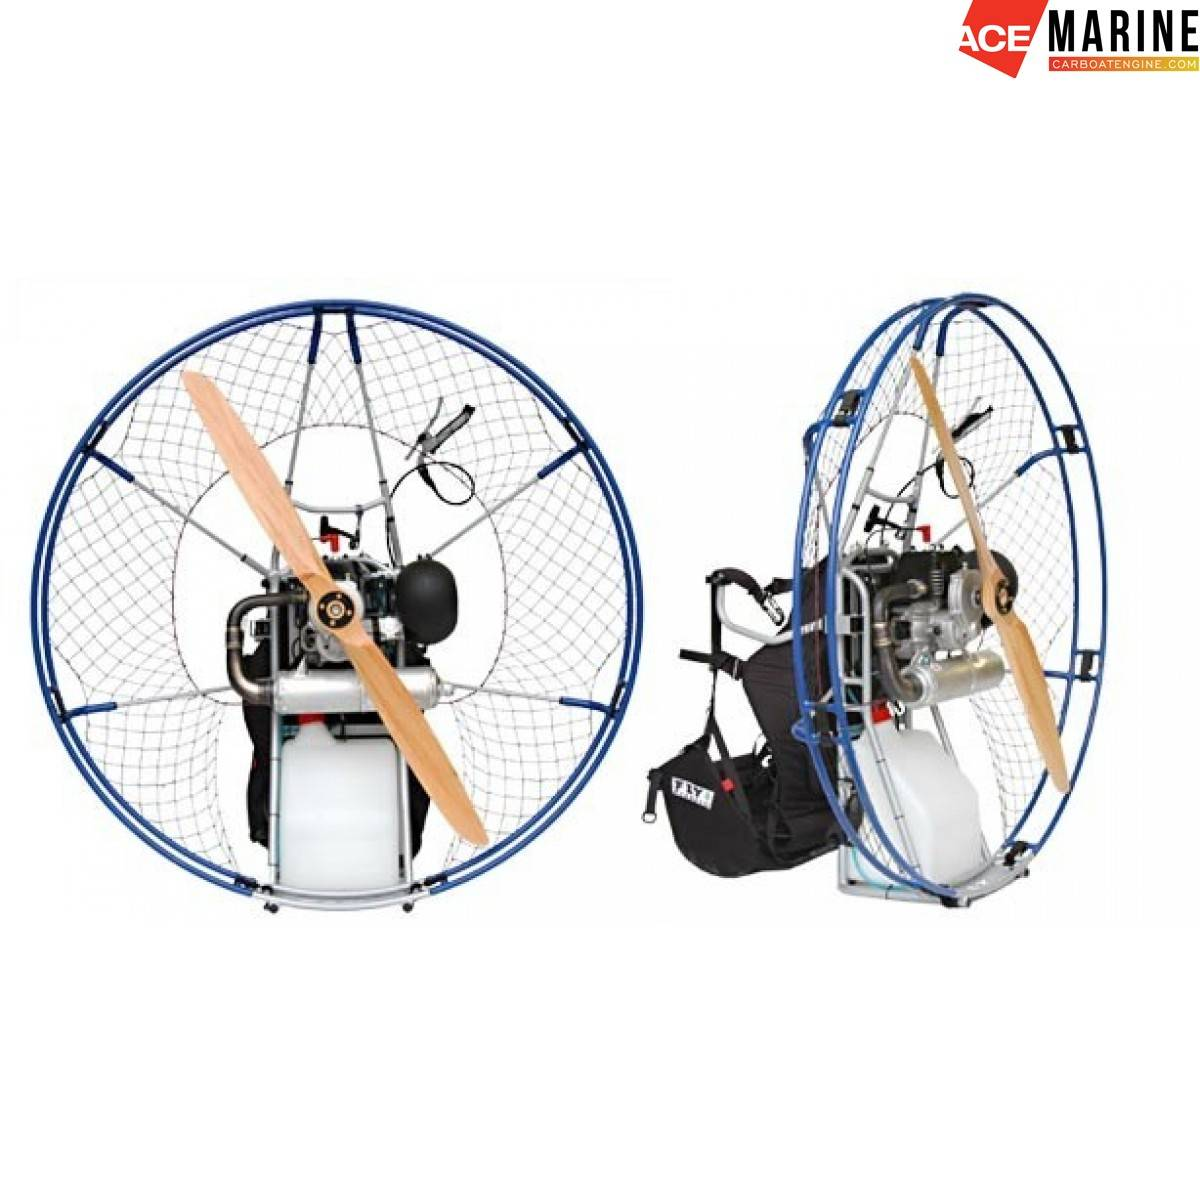 FLY PRODUCTS POWER JET PARAMOTOR